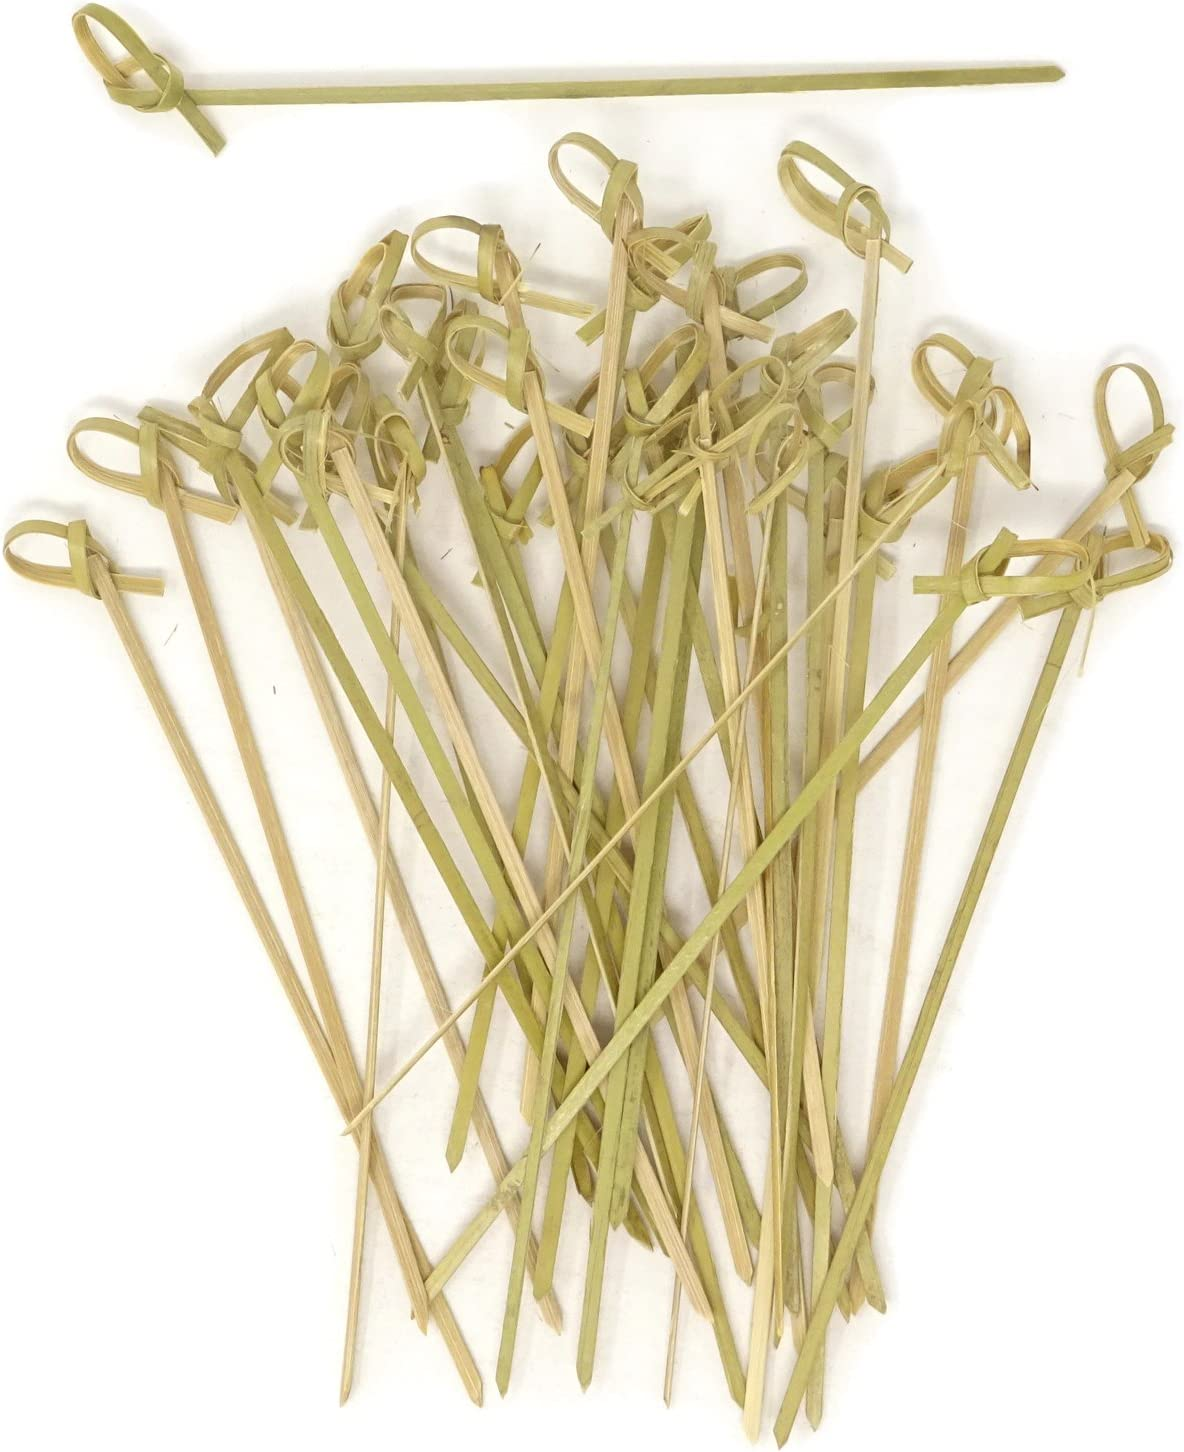 Honbay 100PCS 15cm 6 Inch Cocktail Picks Bamboo Knot Skewers Knotted Skewers Twisted Ends Bamboo Picks